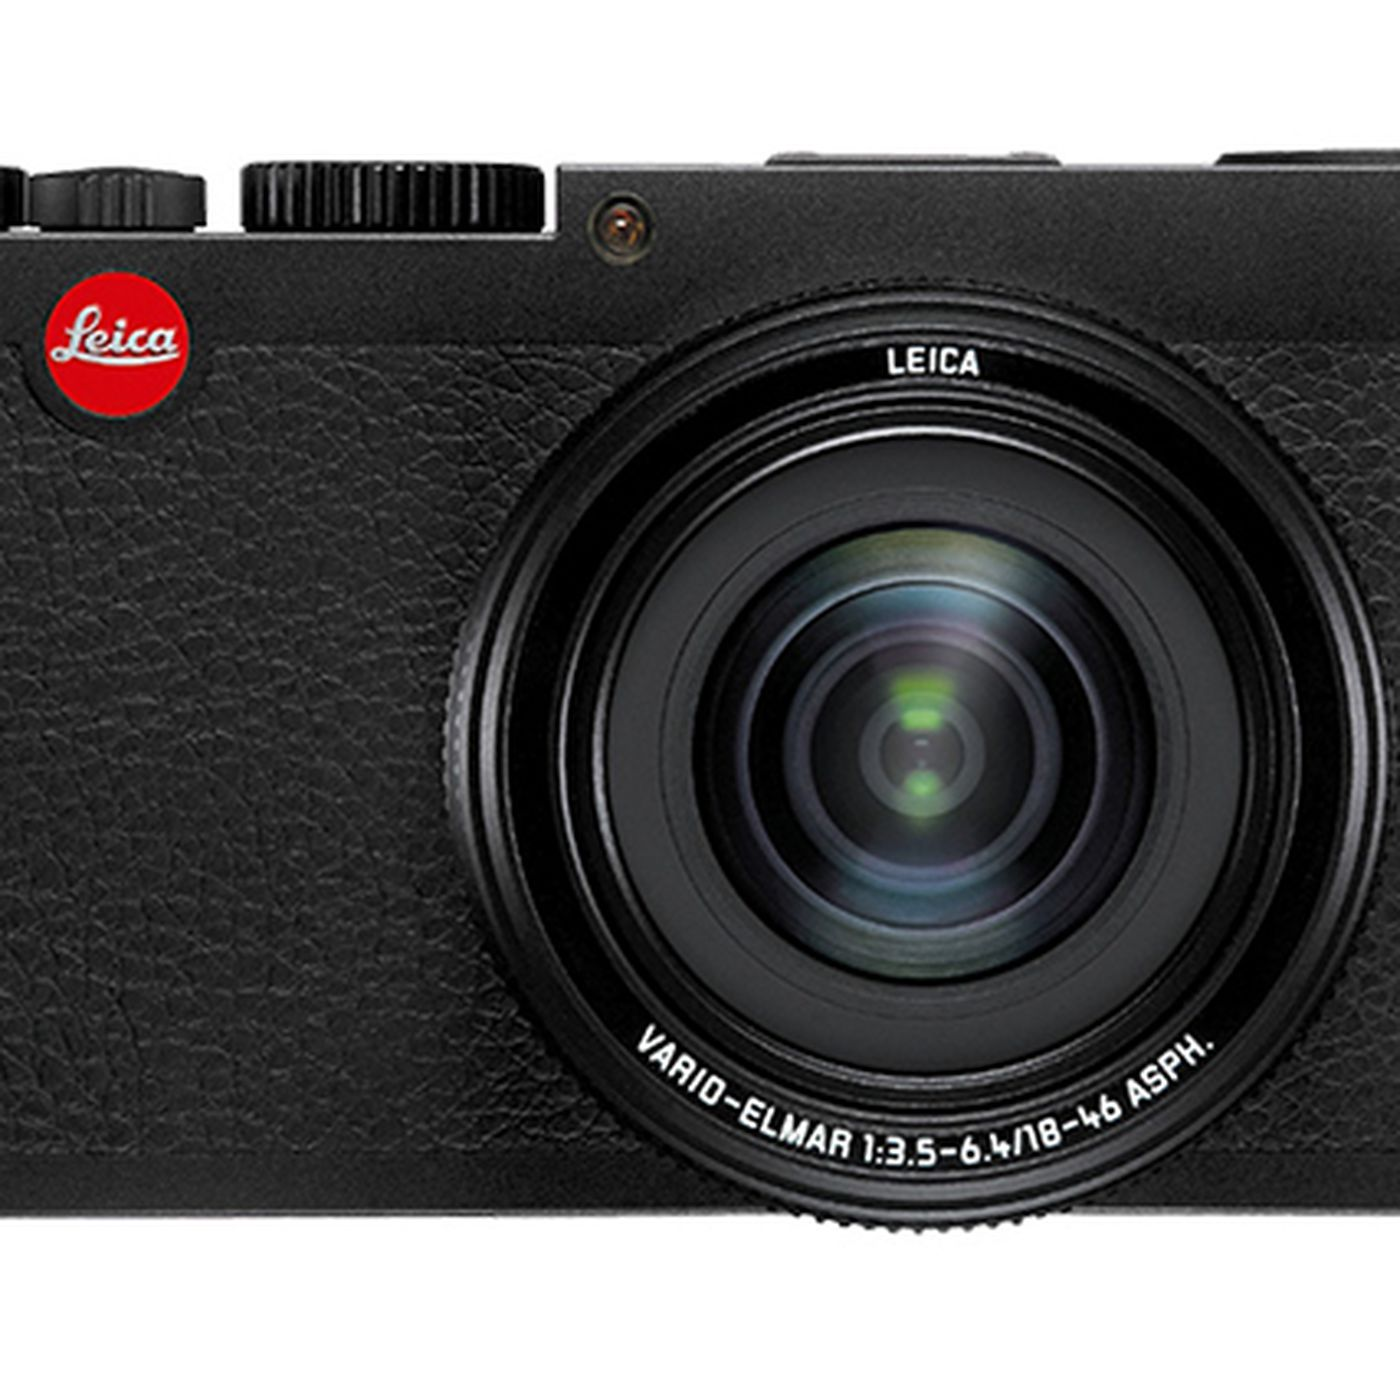 Leica's new X Vario compact APS-C camera can't compete - The